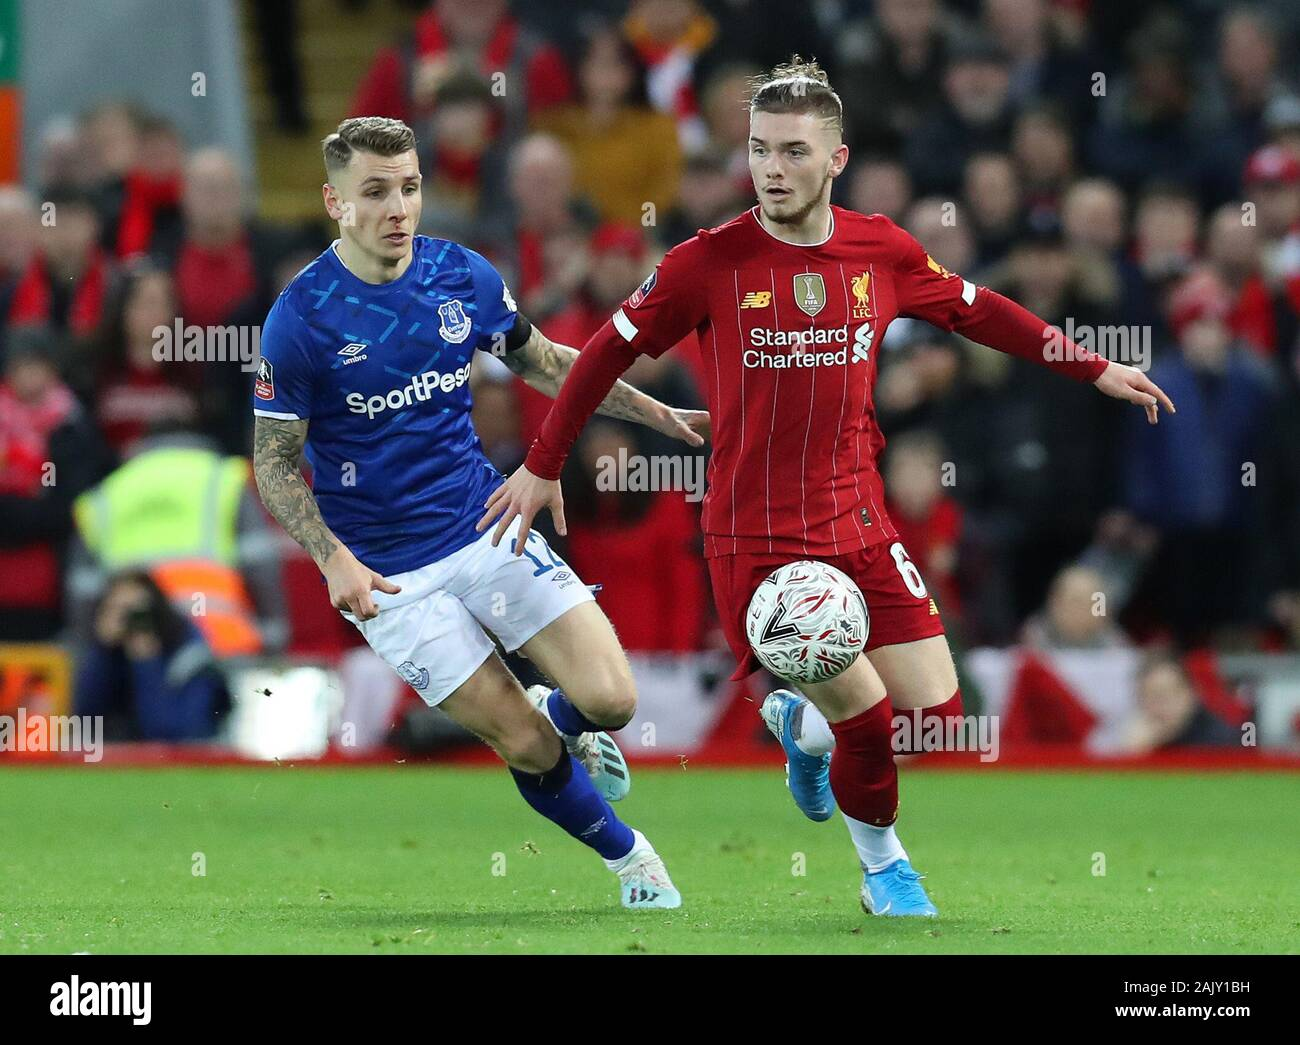 Anfield Liverpool Merseyside Uk 5th Jan 2020 English Fa Cup Football Liverpool Versus Everton Harvey Elliott Of Liverpool Shields The Ball From Lucas Digne Of Everton Strictly Editorial Use Only No